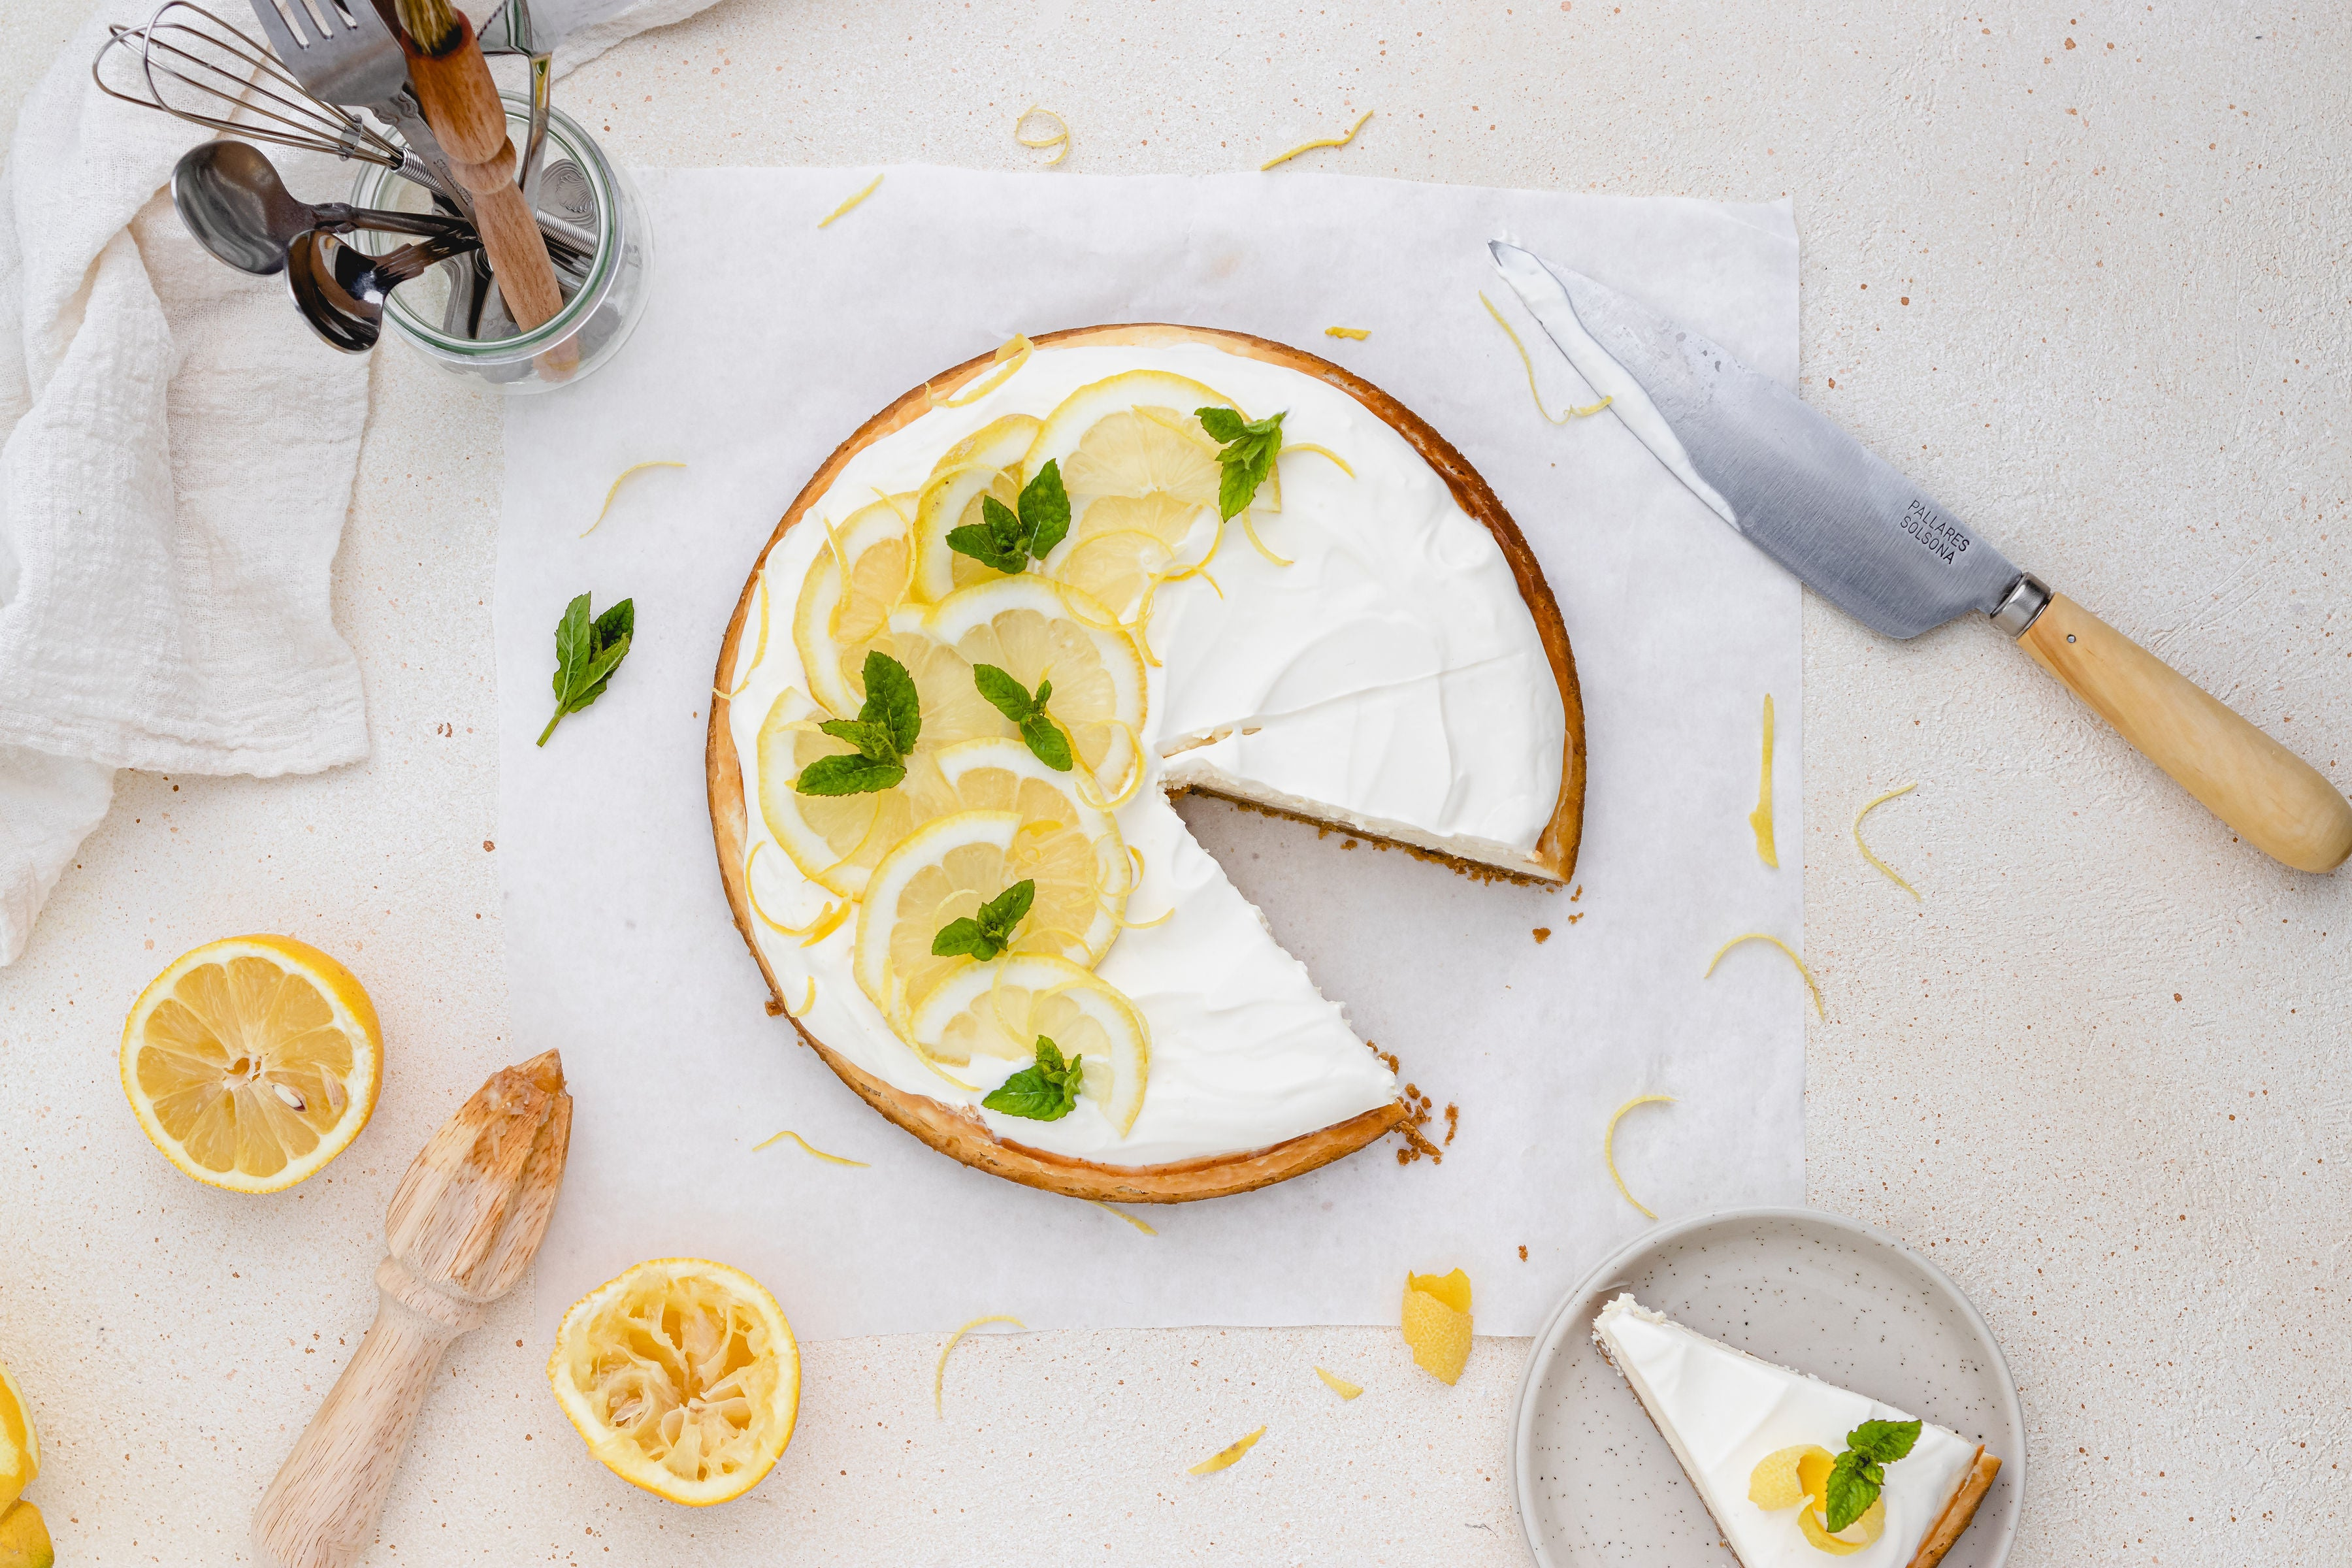 Overhead shot of cheesecake with lemon slices and a slice removed